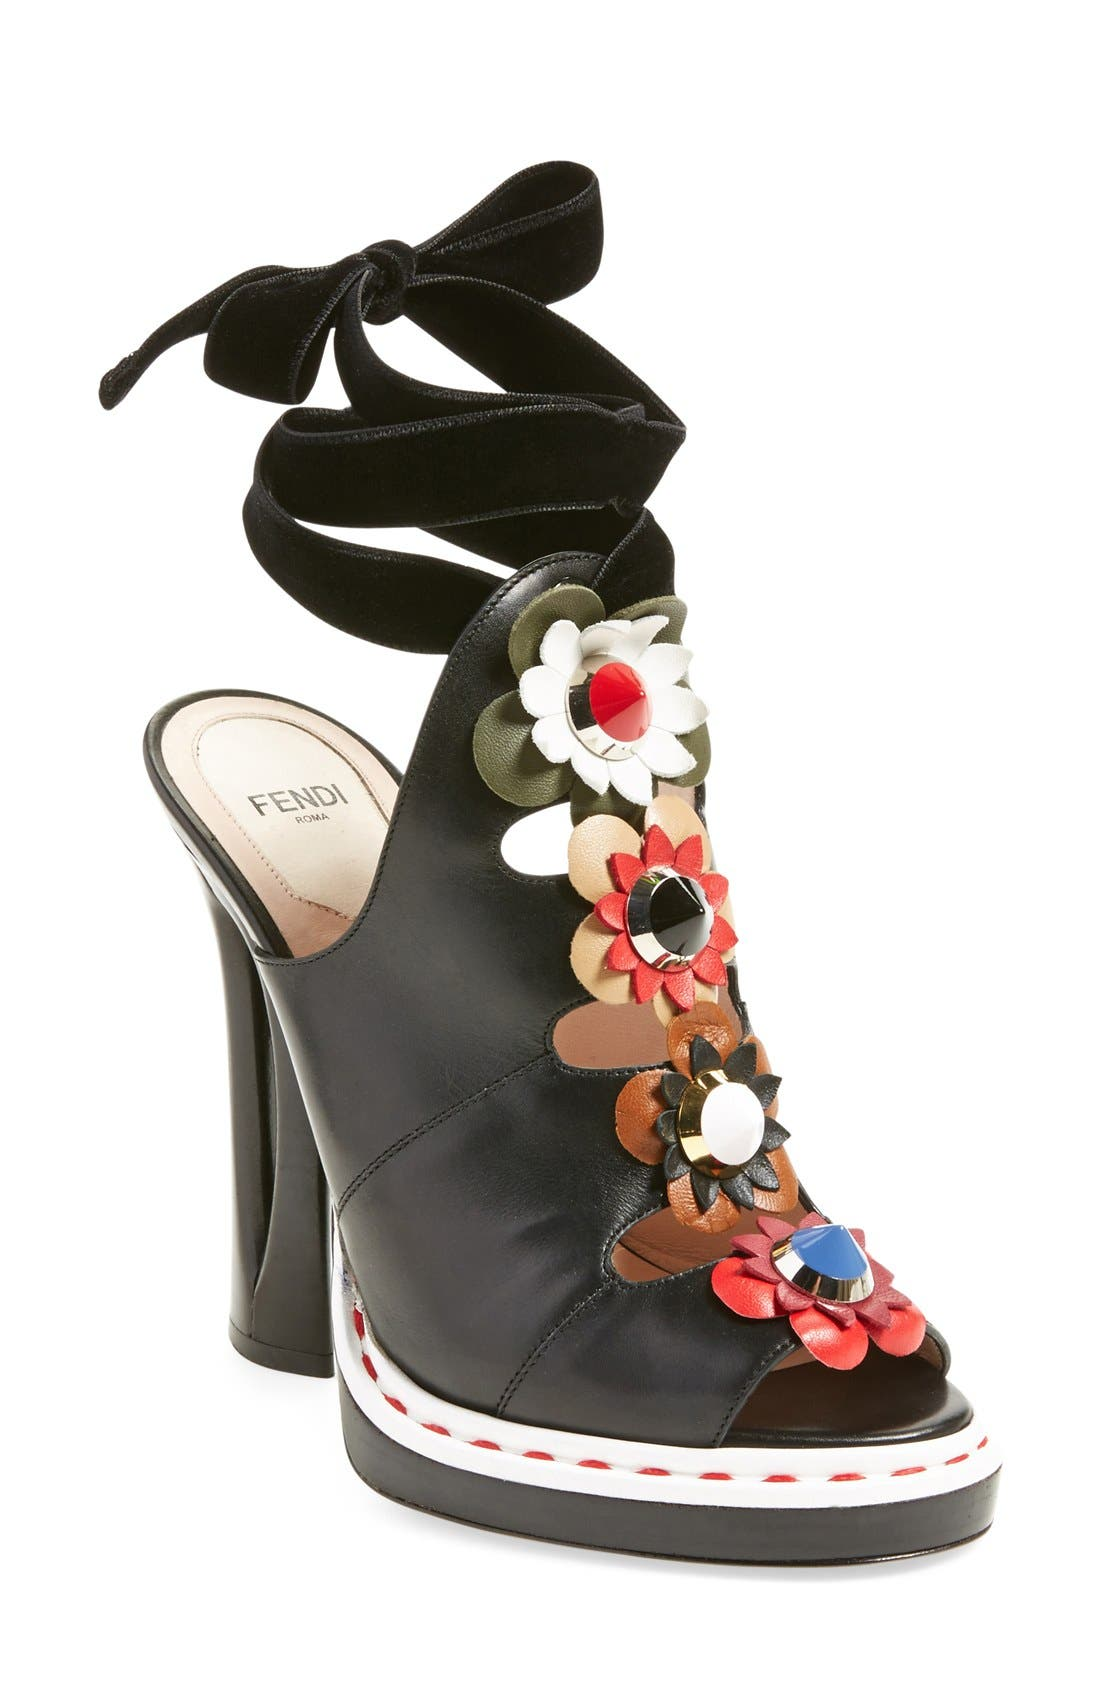 'Flowerland' Peep Toe Sandal,                             Main thumbnail 1, color,                             002